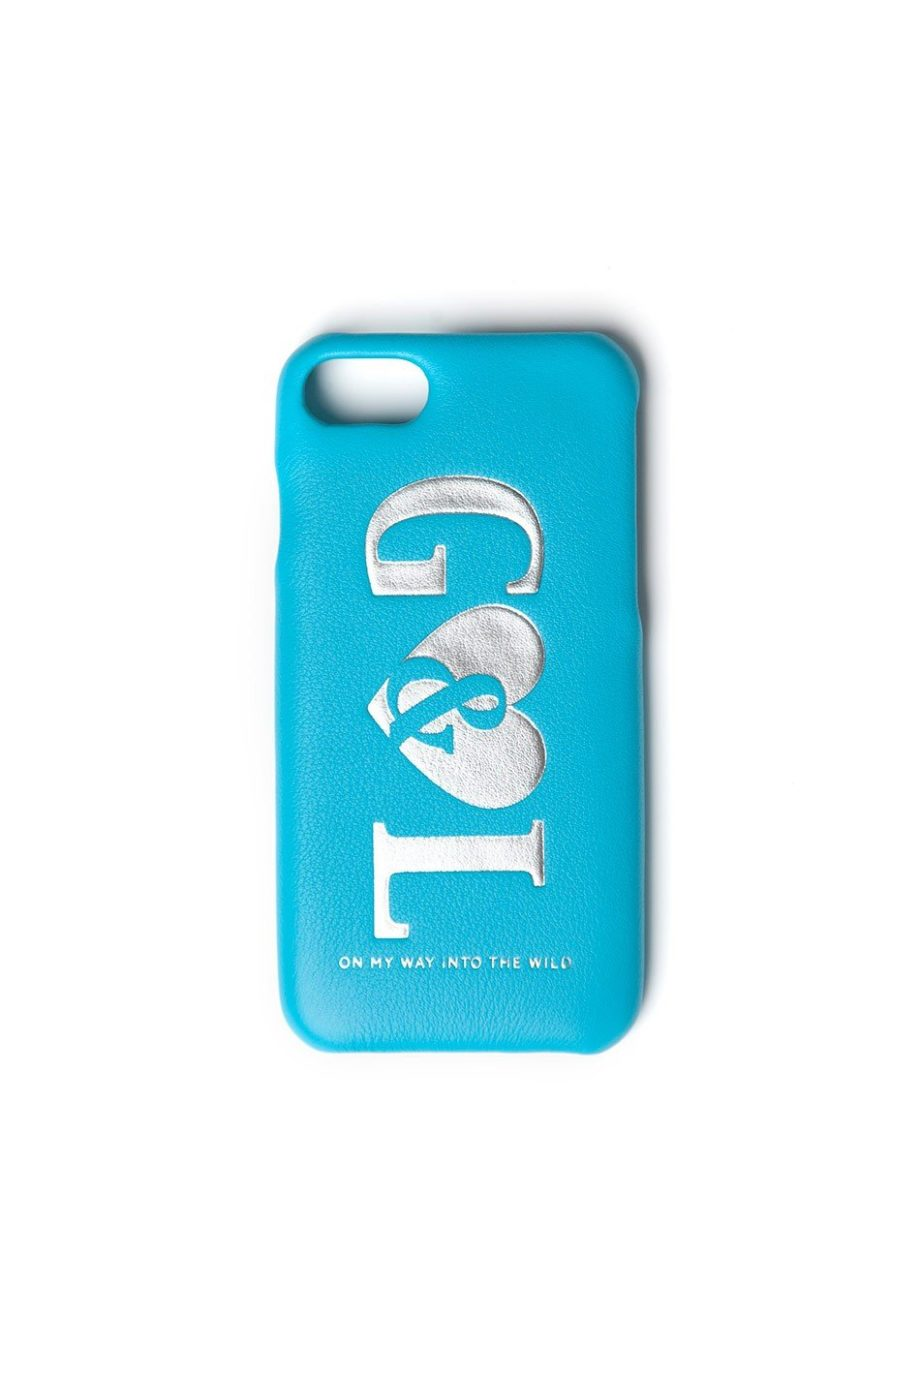 G&L Case iPhone 6/7/8 ACQUA